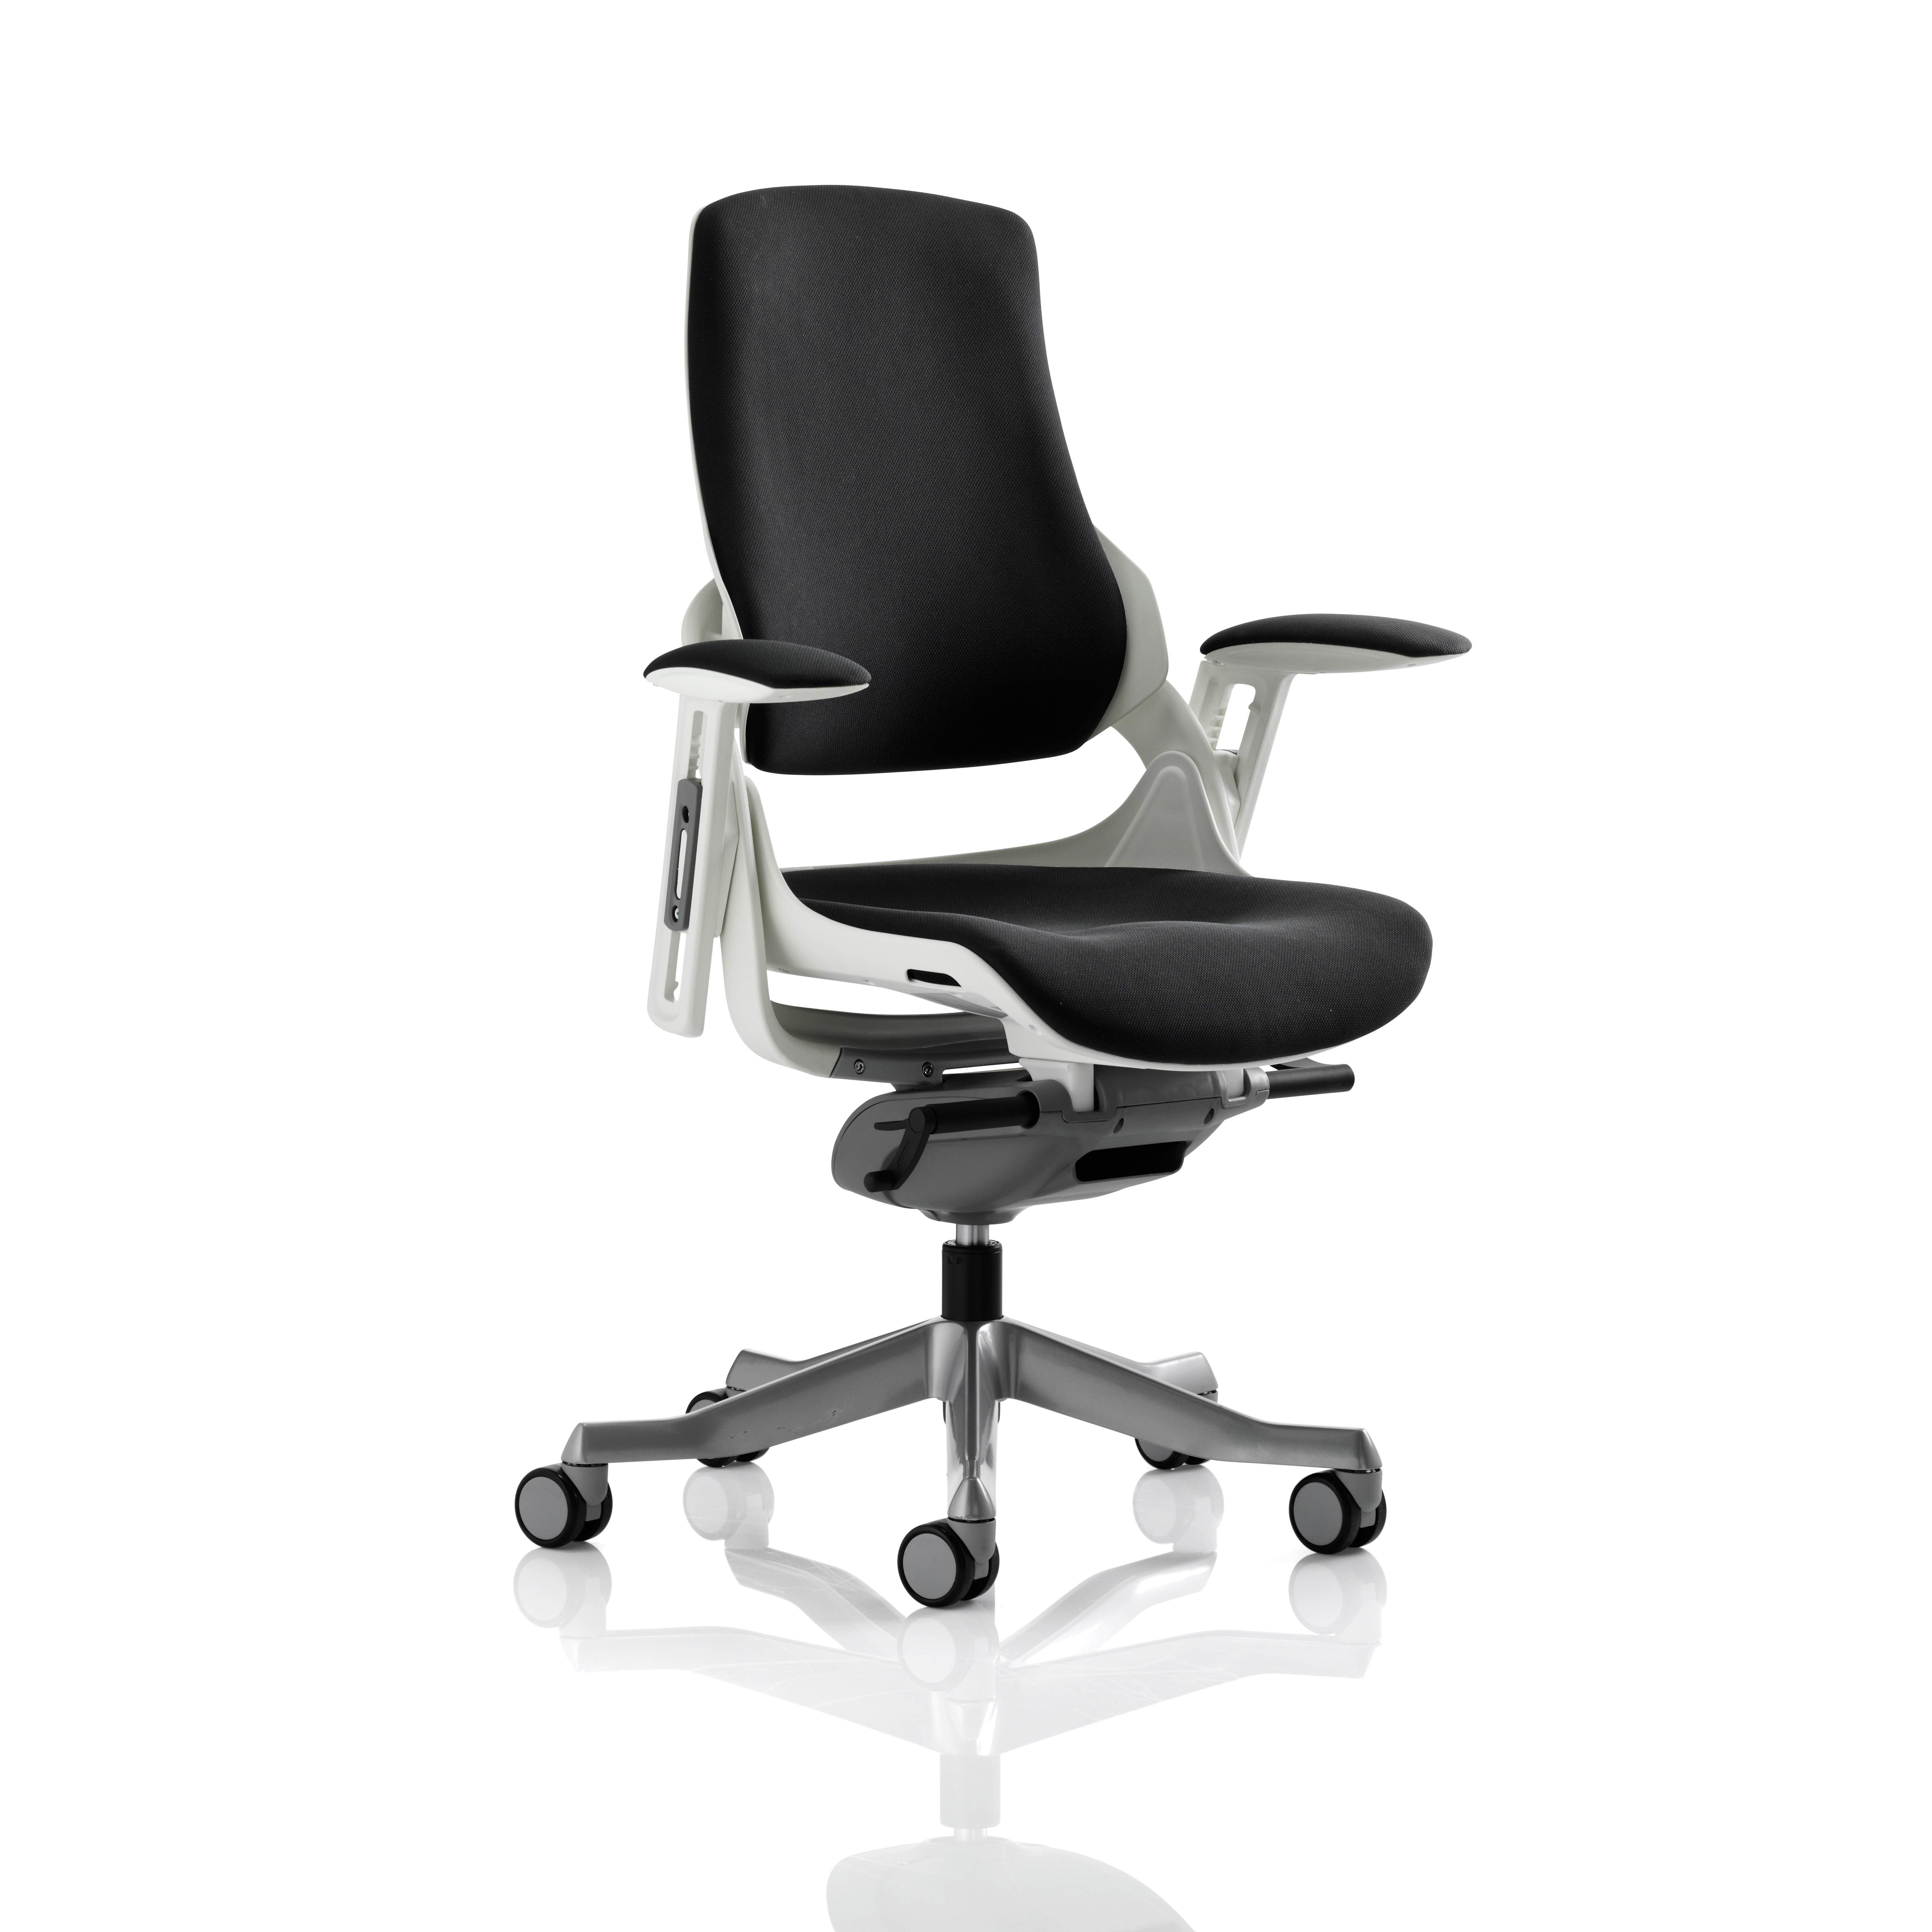 Adroit Zure Executive Chair With Arms Fabric Black Ref EX000114